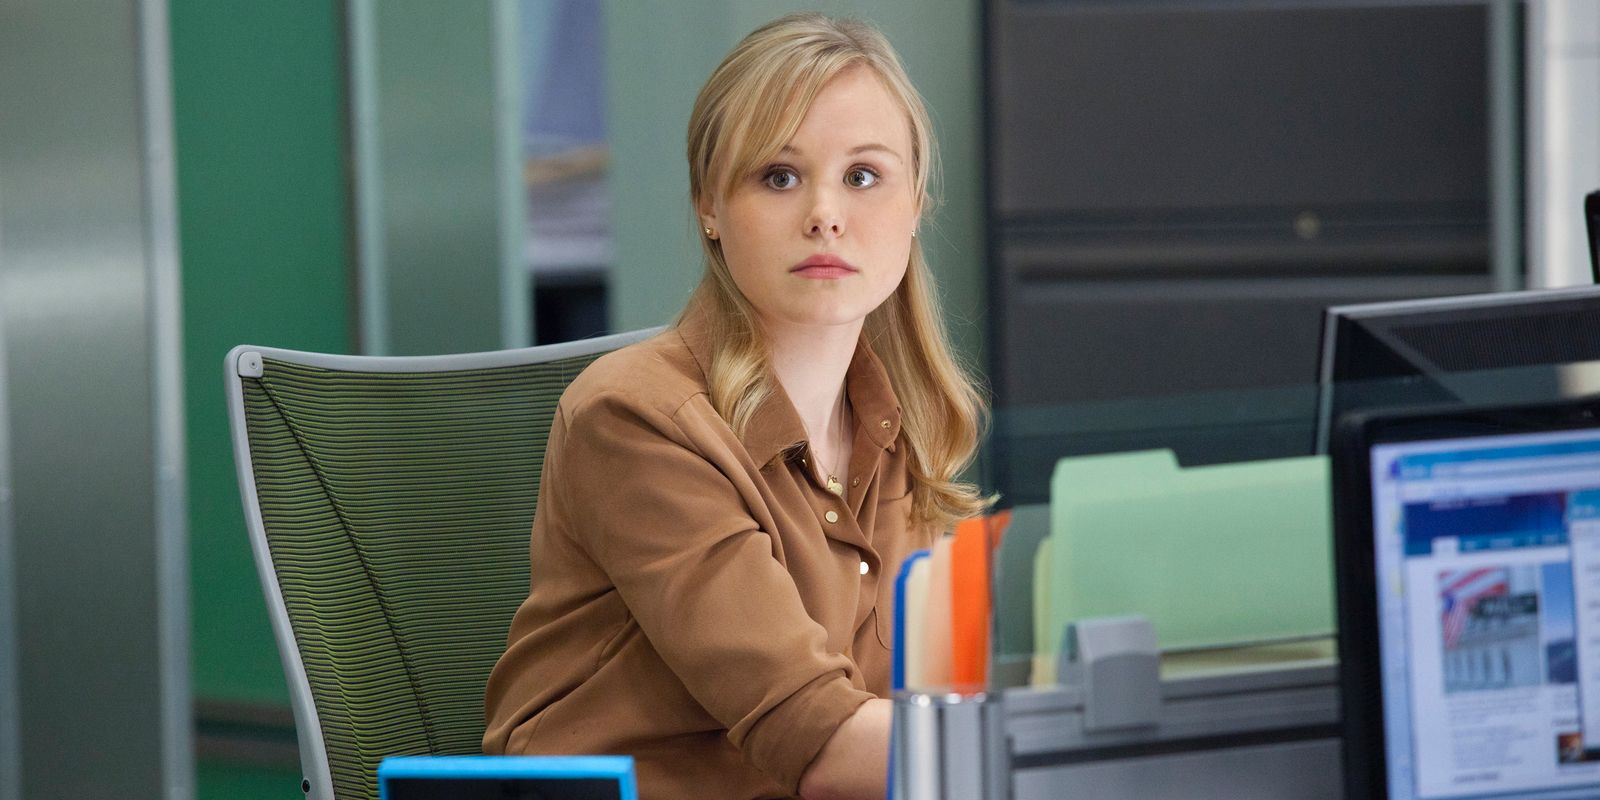 Alison Pill Fotos ryan murphy's ahs season 7 adds alison pill | screen rant